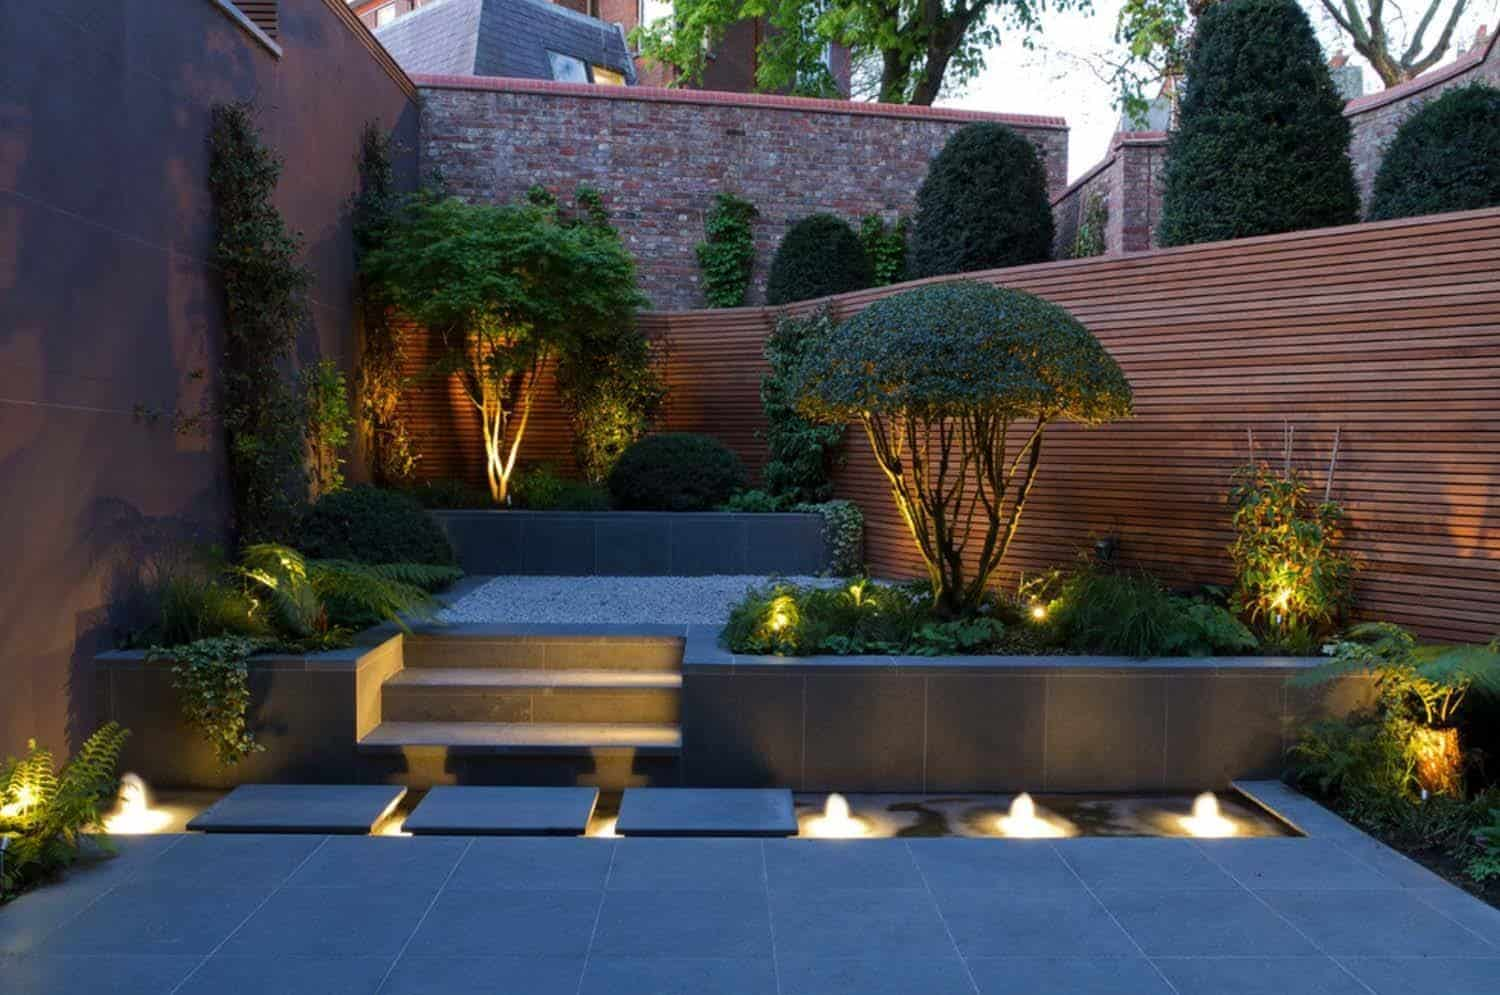 Fullsize Of Backyard Patio Garden Ideas